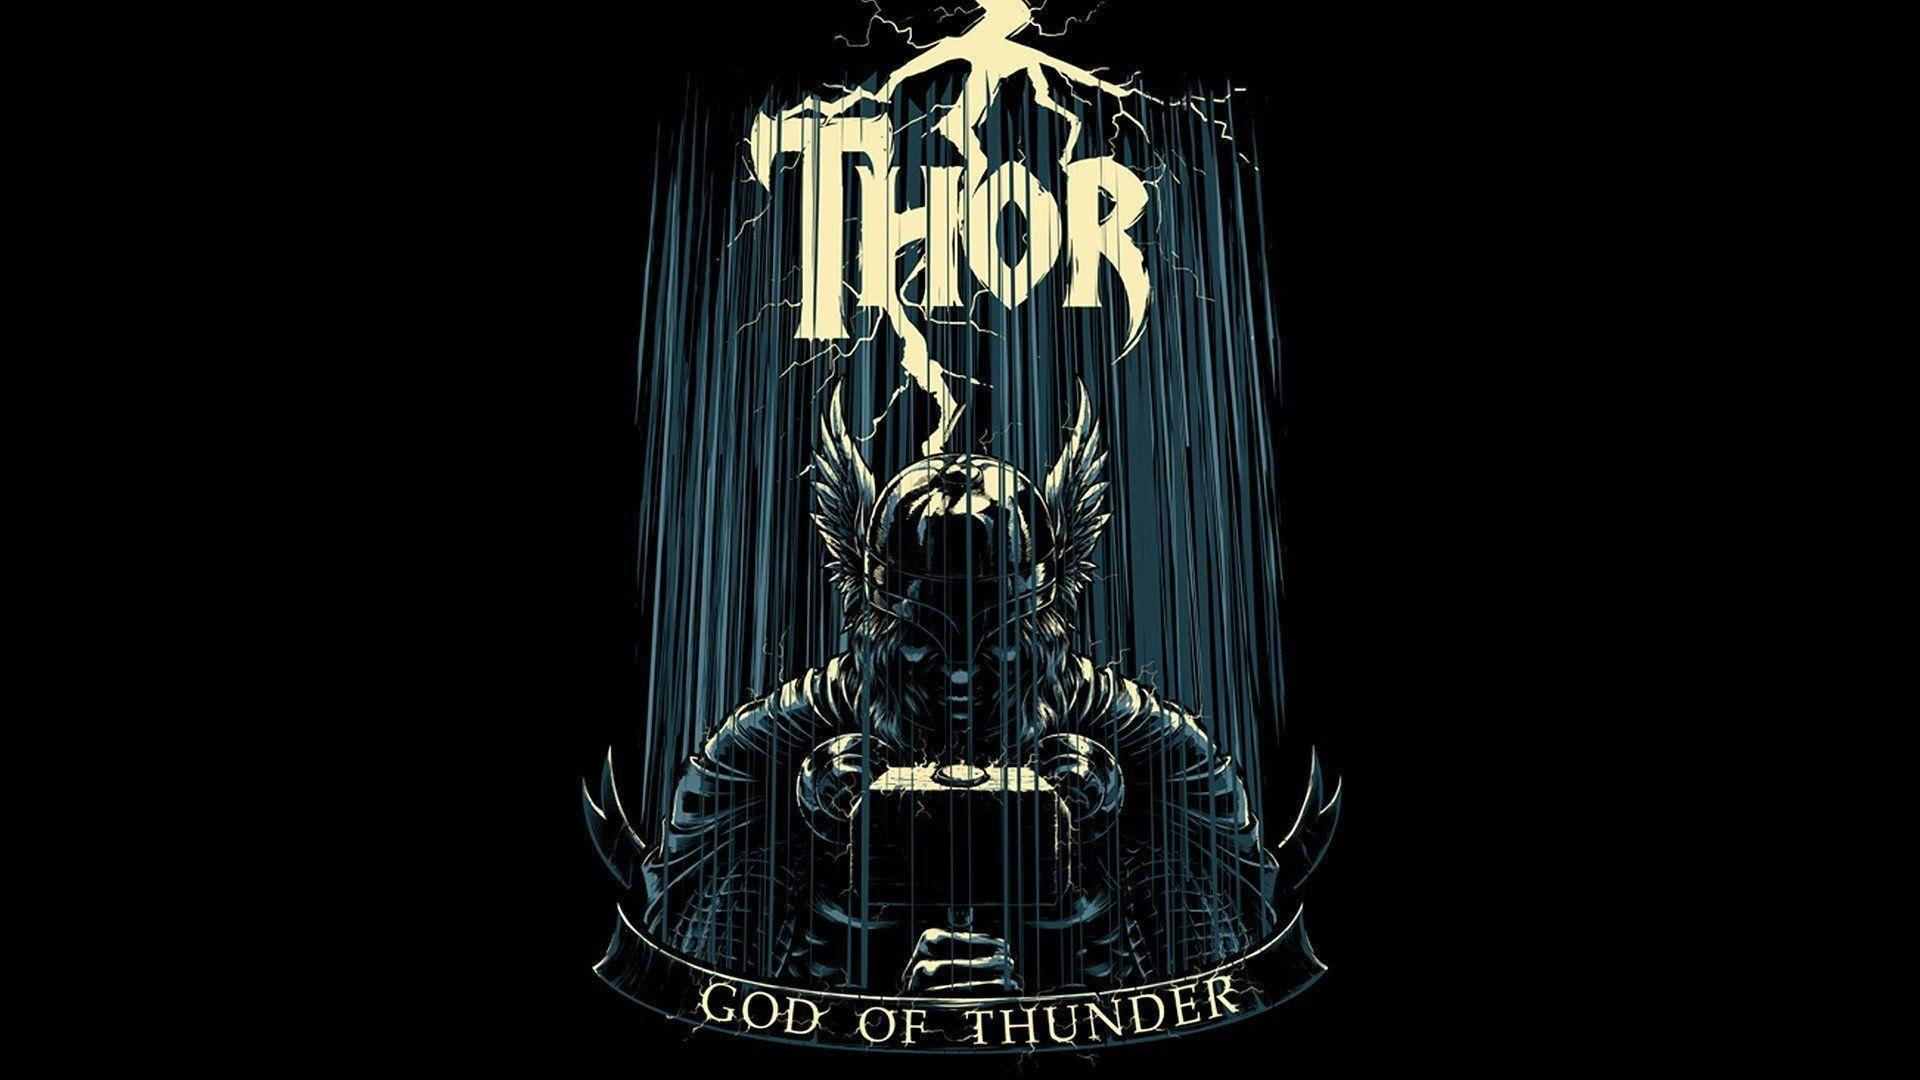 6 Thor: God of Thunder HD Wallpapers